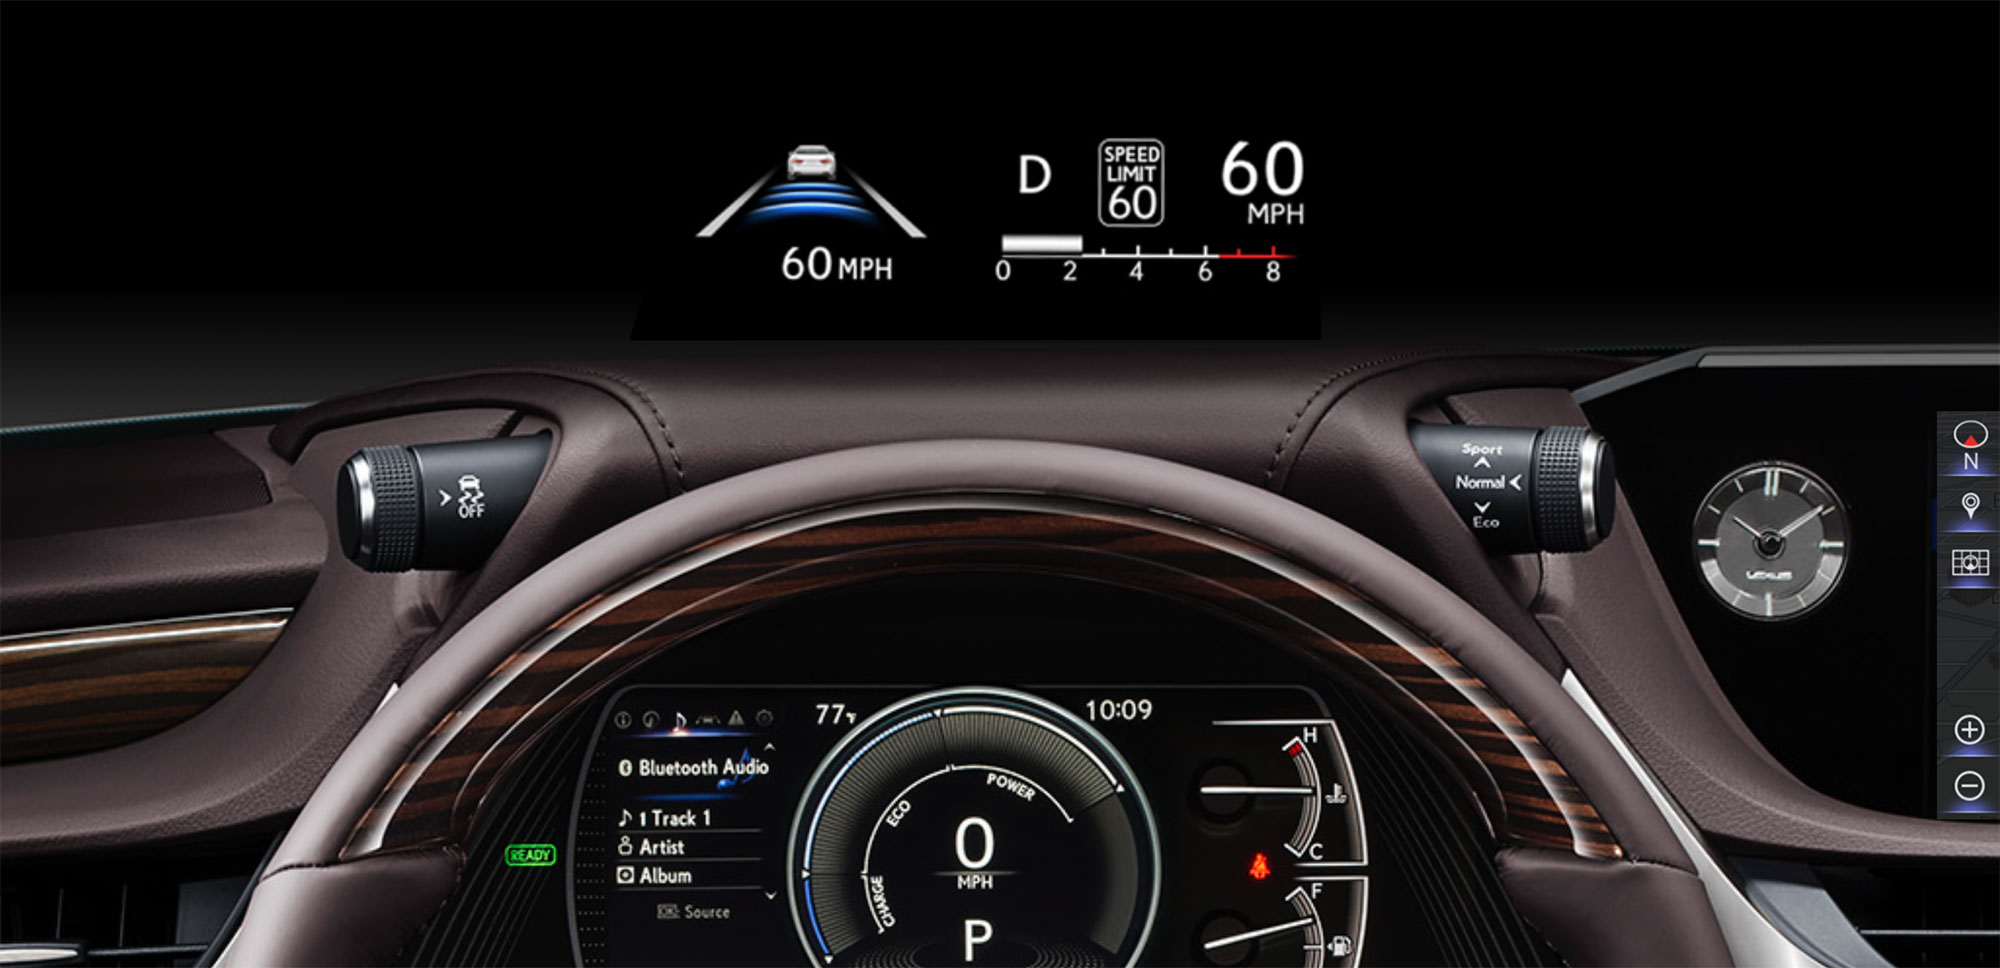 Lexus ES Heads Up Display